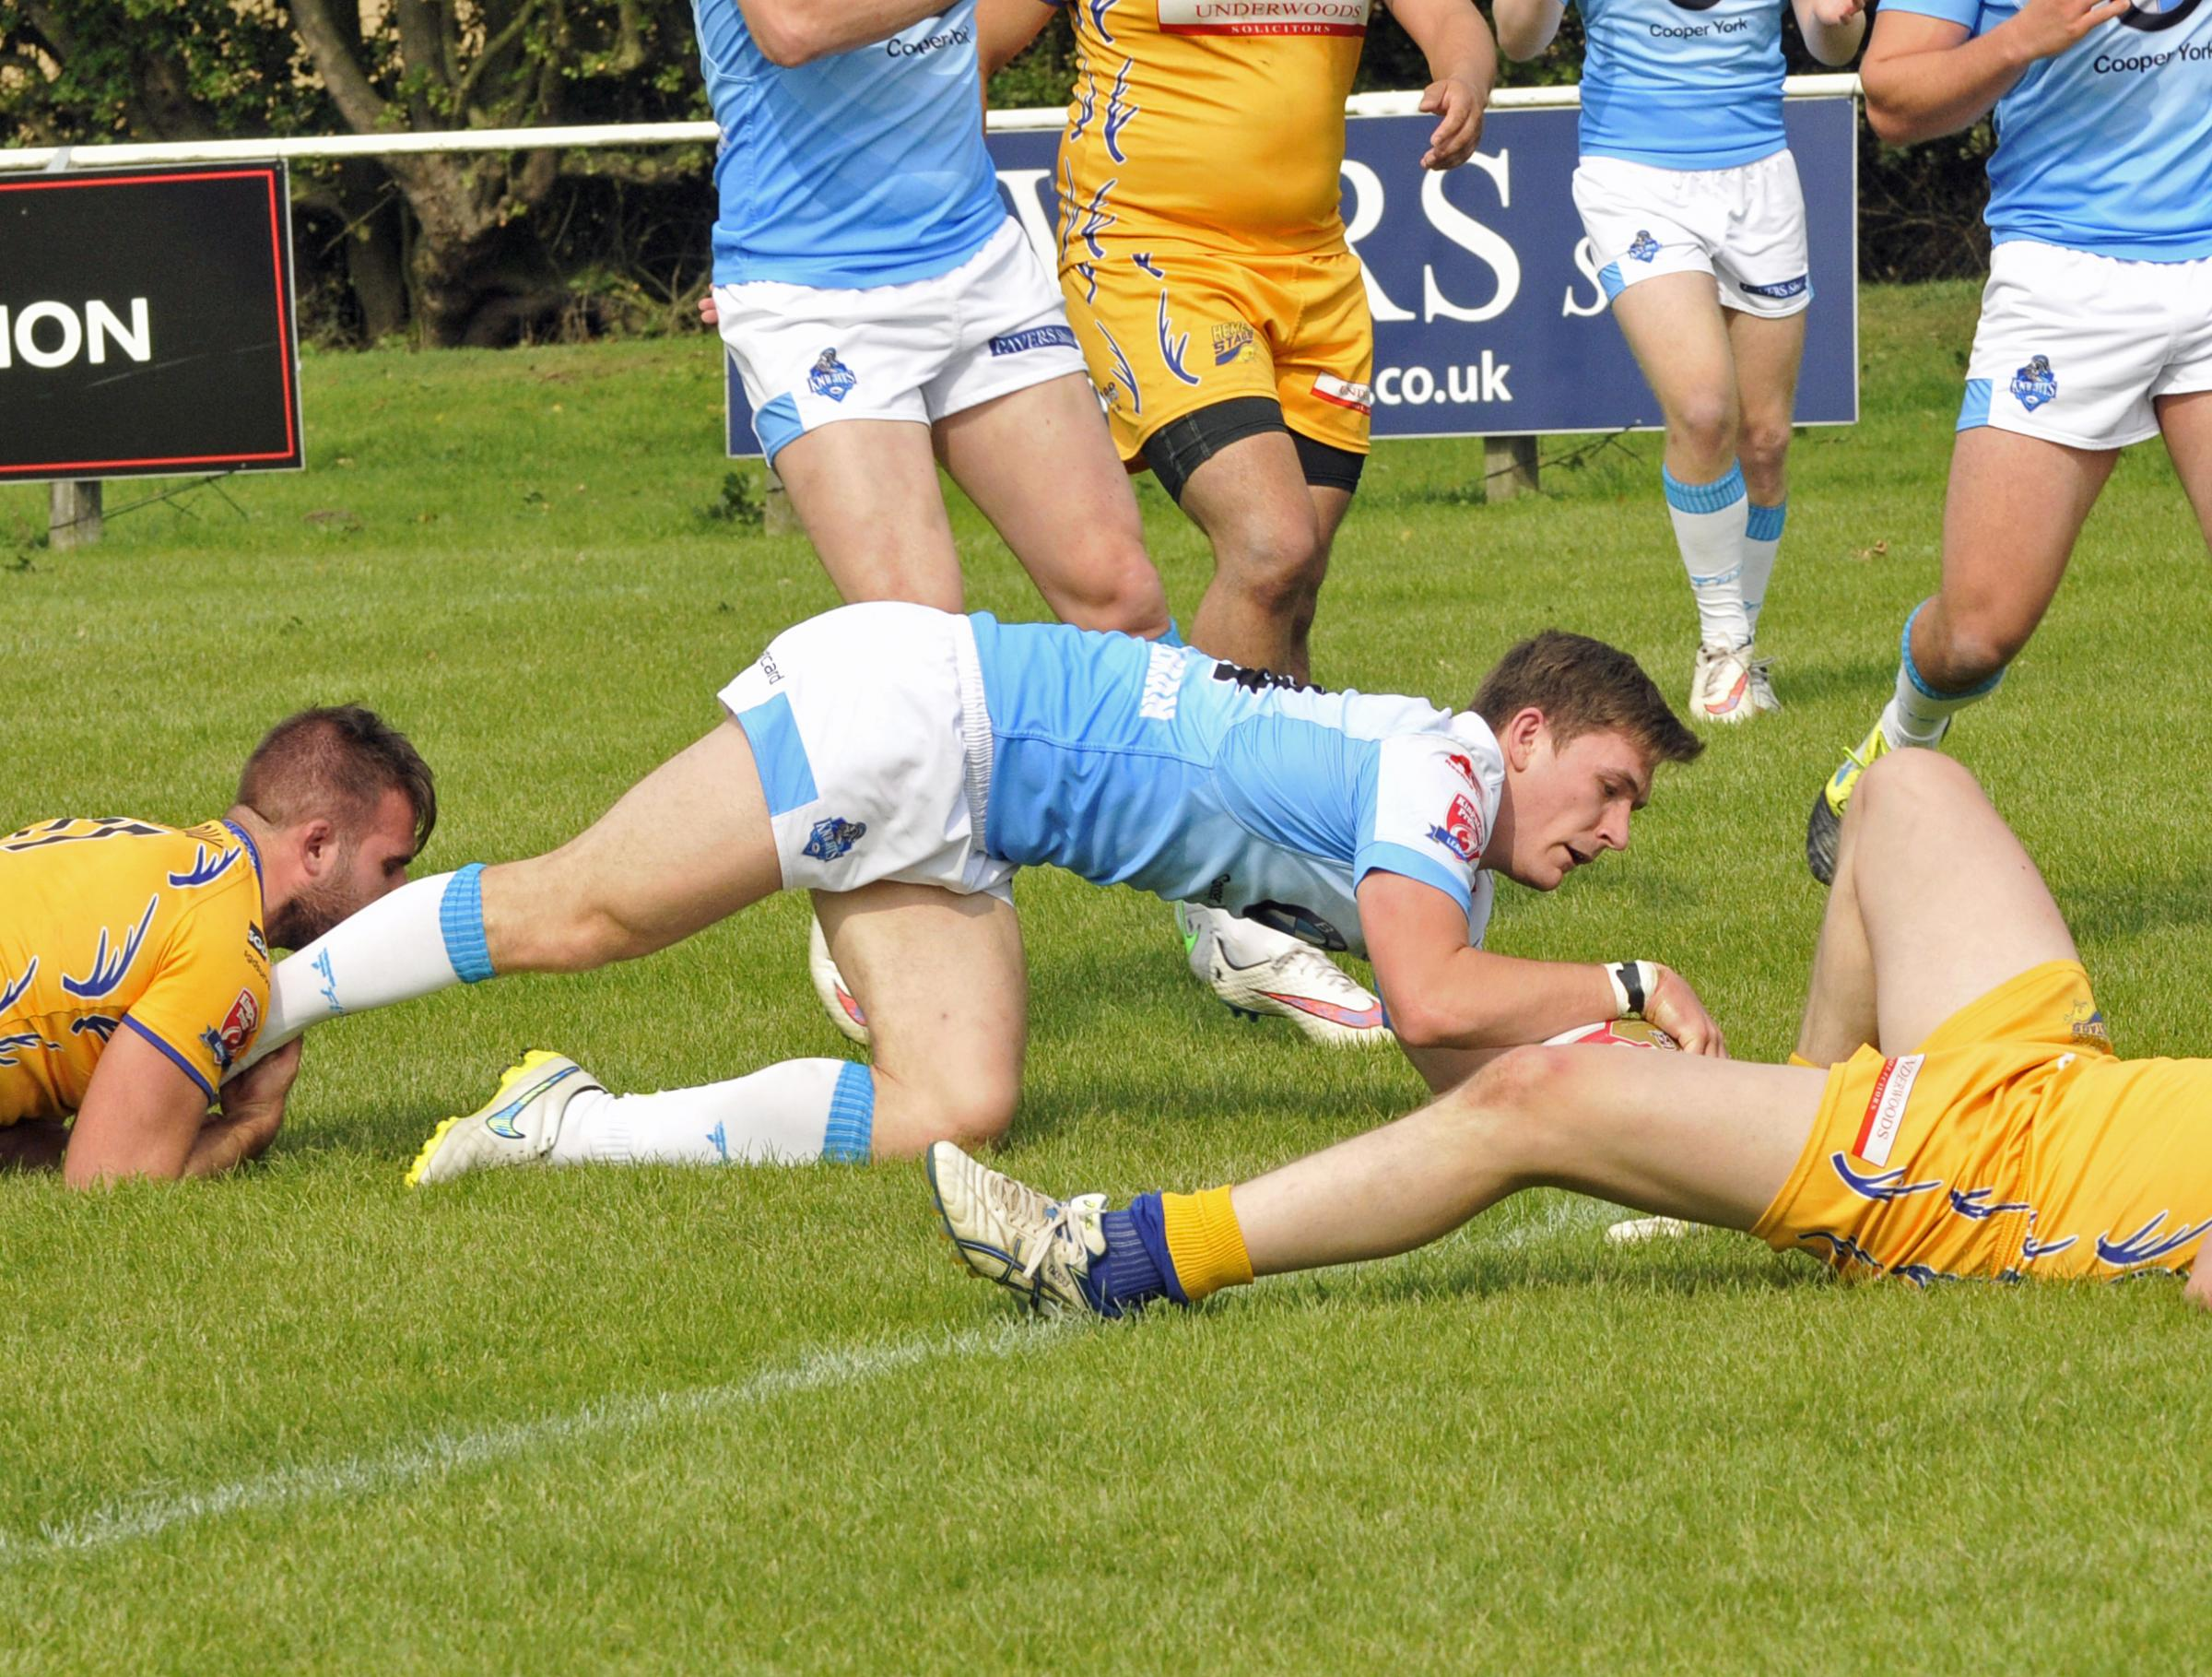 Kriss Brining scores a try against Hemel Stags in the win that all but secured the Knights a place in the League One play-offsPicture: Charles Peart